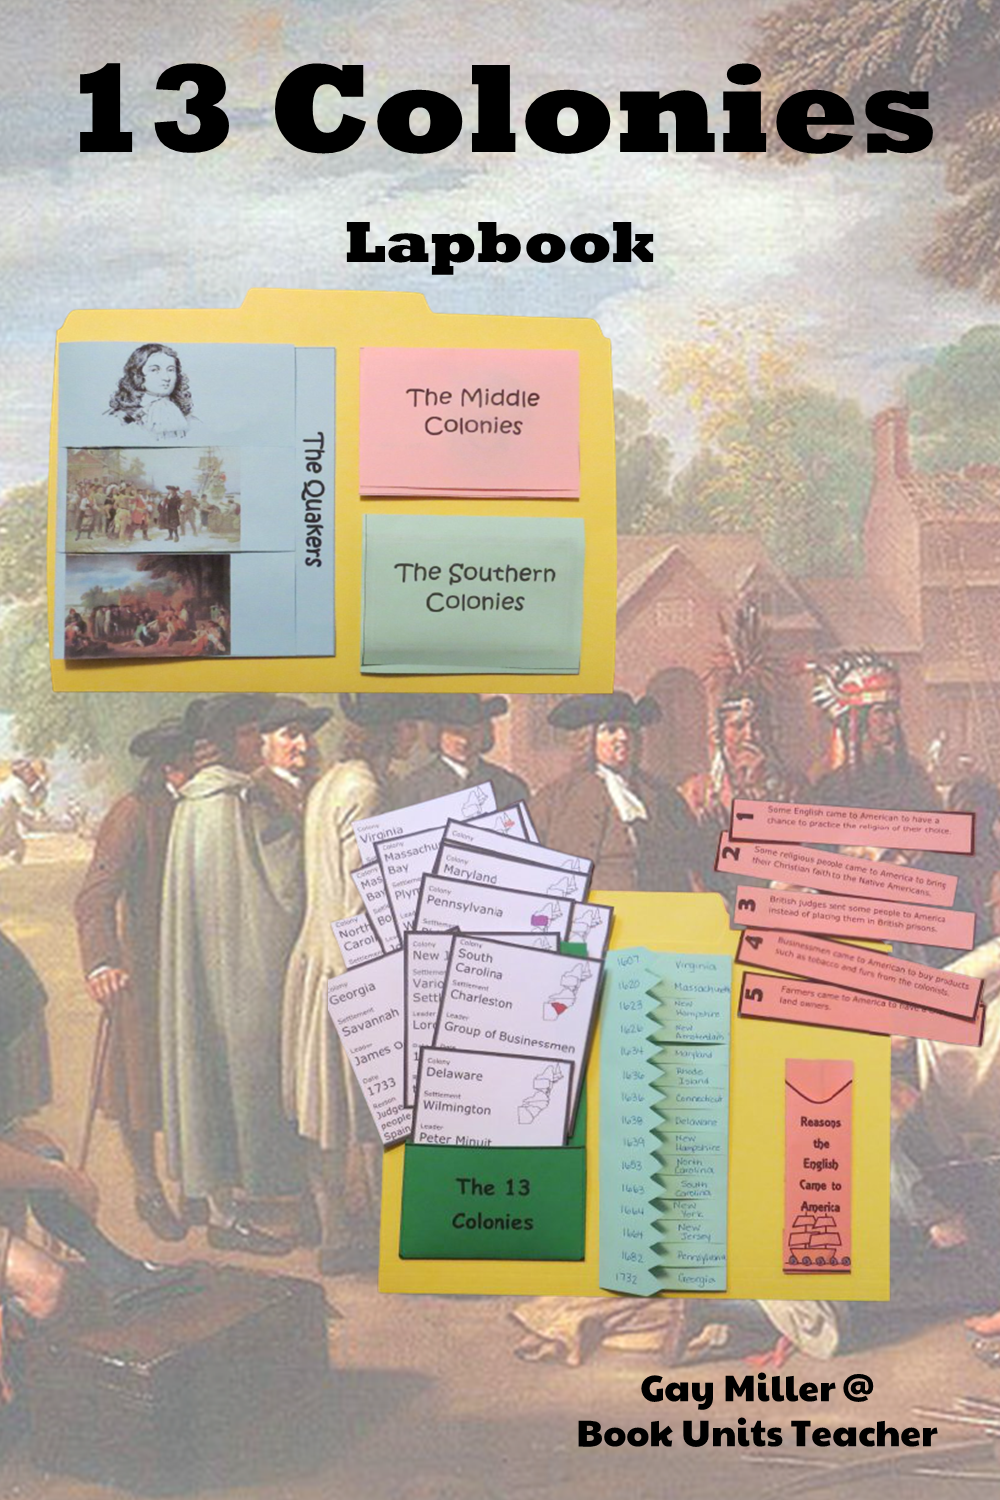 Purchase Colonial America Lapbook on Teachers Pay Teachers. This activity is great for upper elementary including 4th, 5th, and 6th graders.